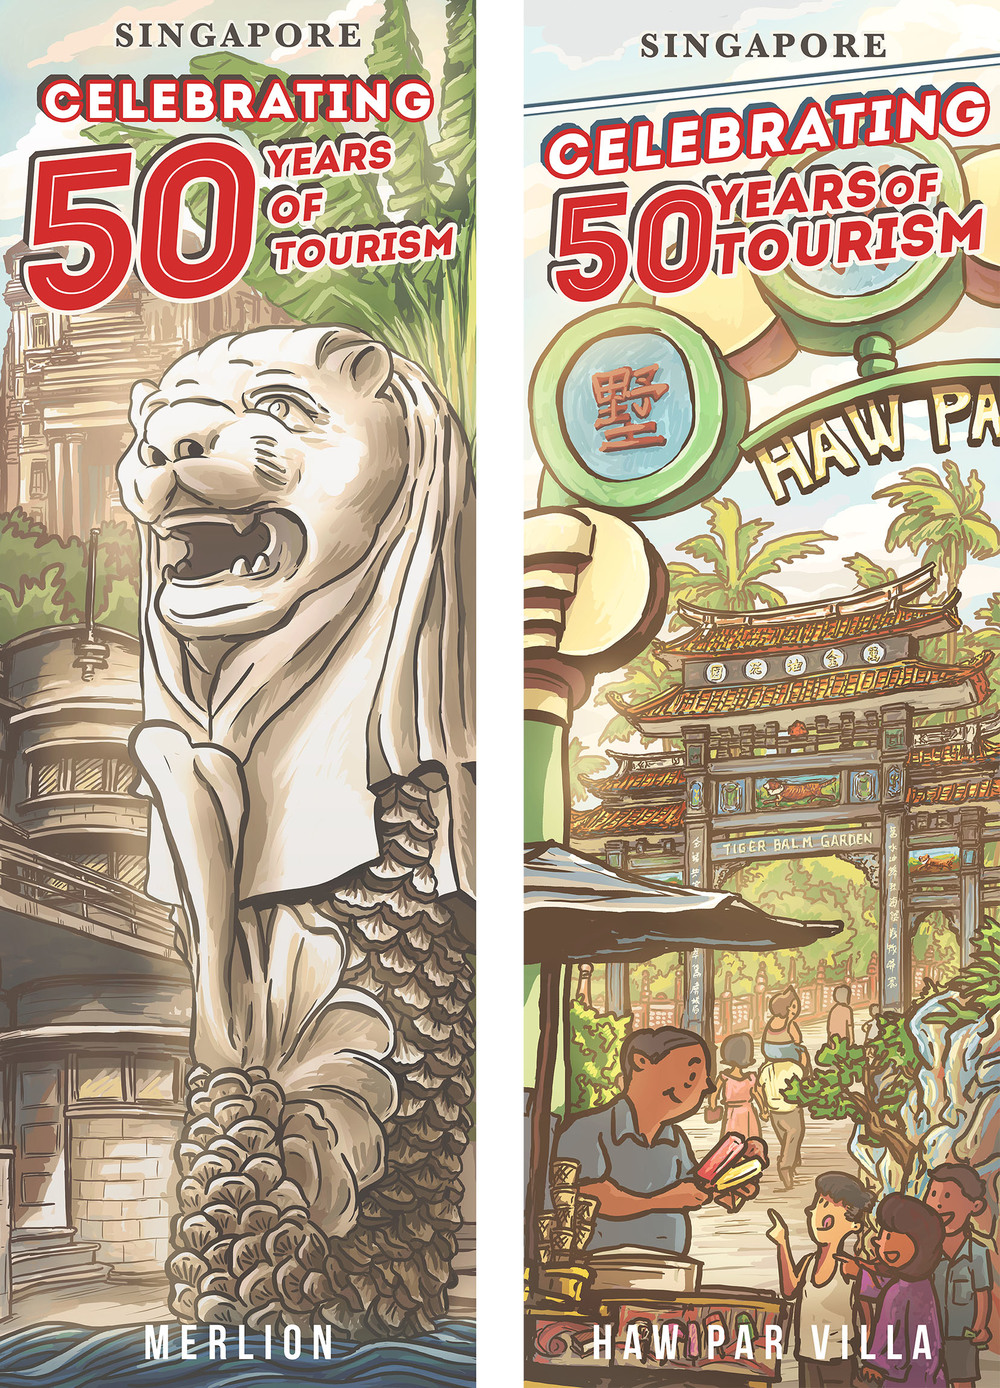 The Tourism 50 Campaign